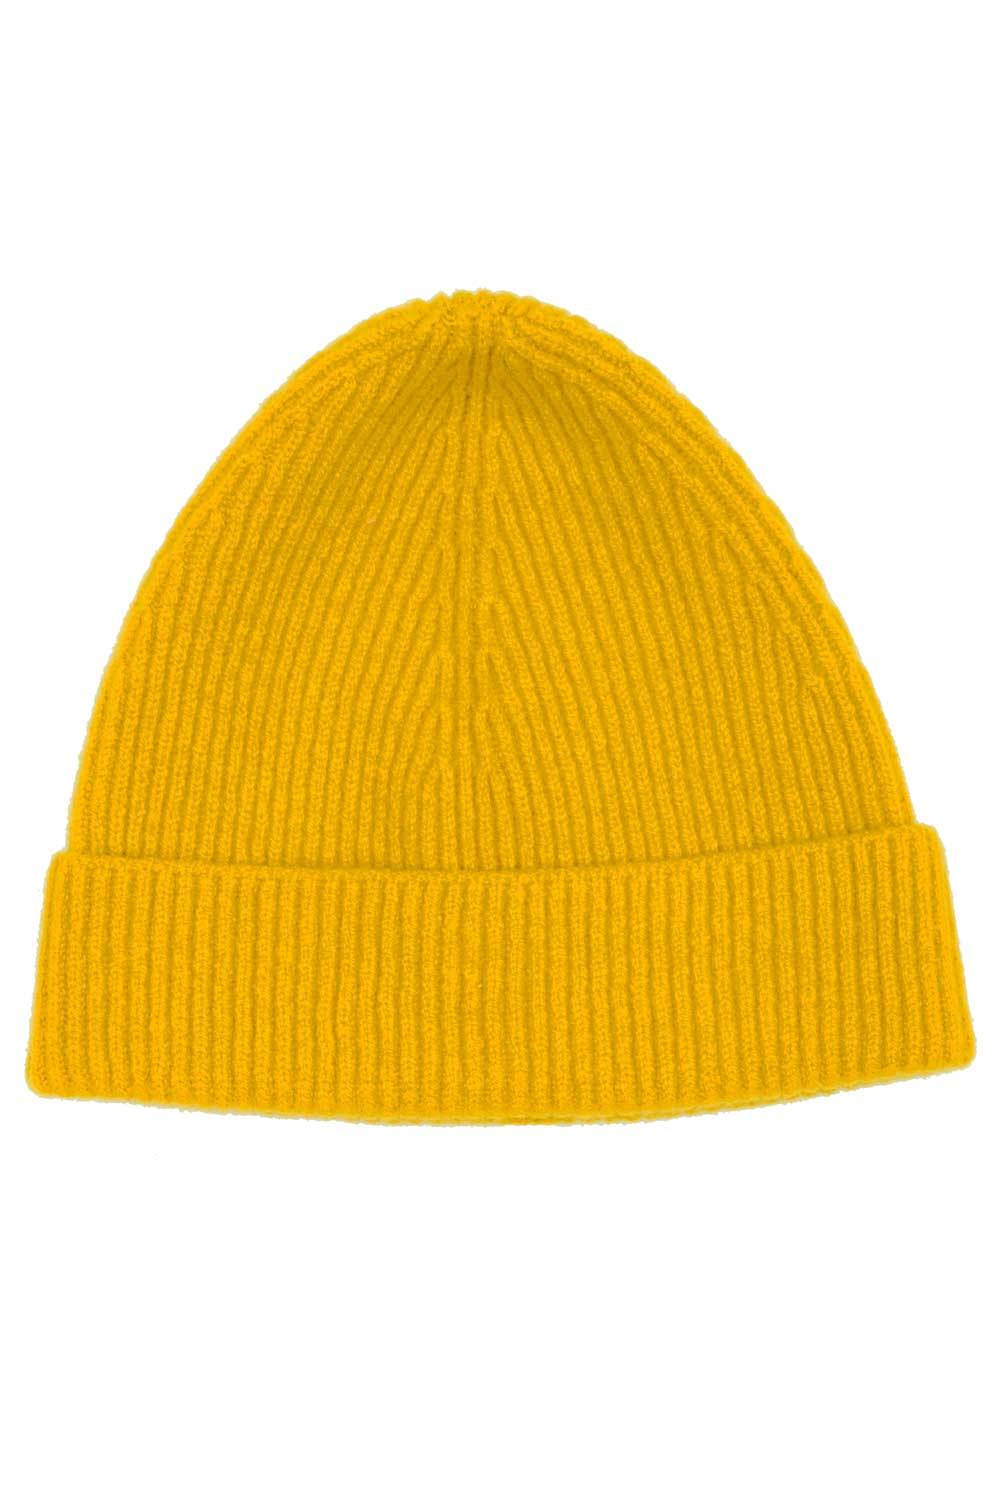 0edb1b5a5f2b Mustard Yellow Beanie Hat (100% Lambswool) British Made